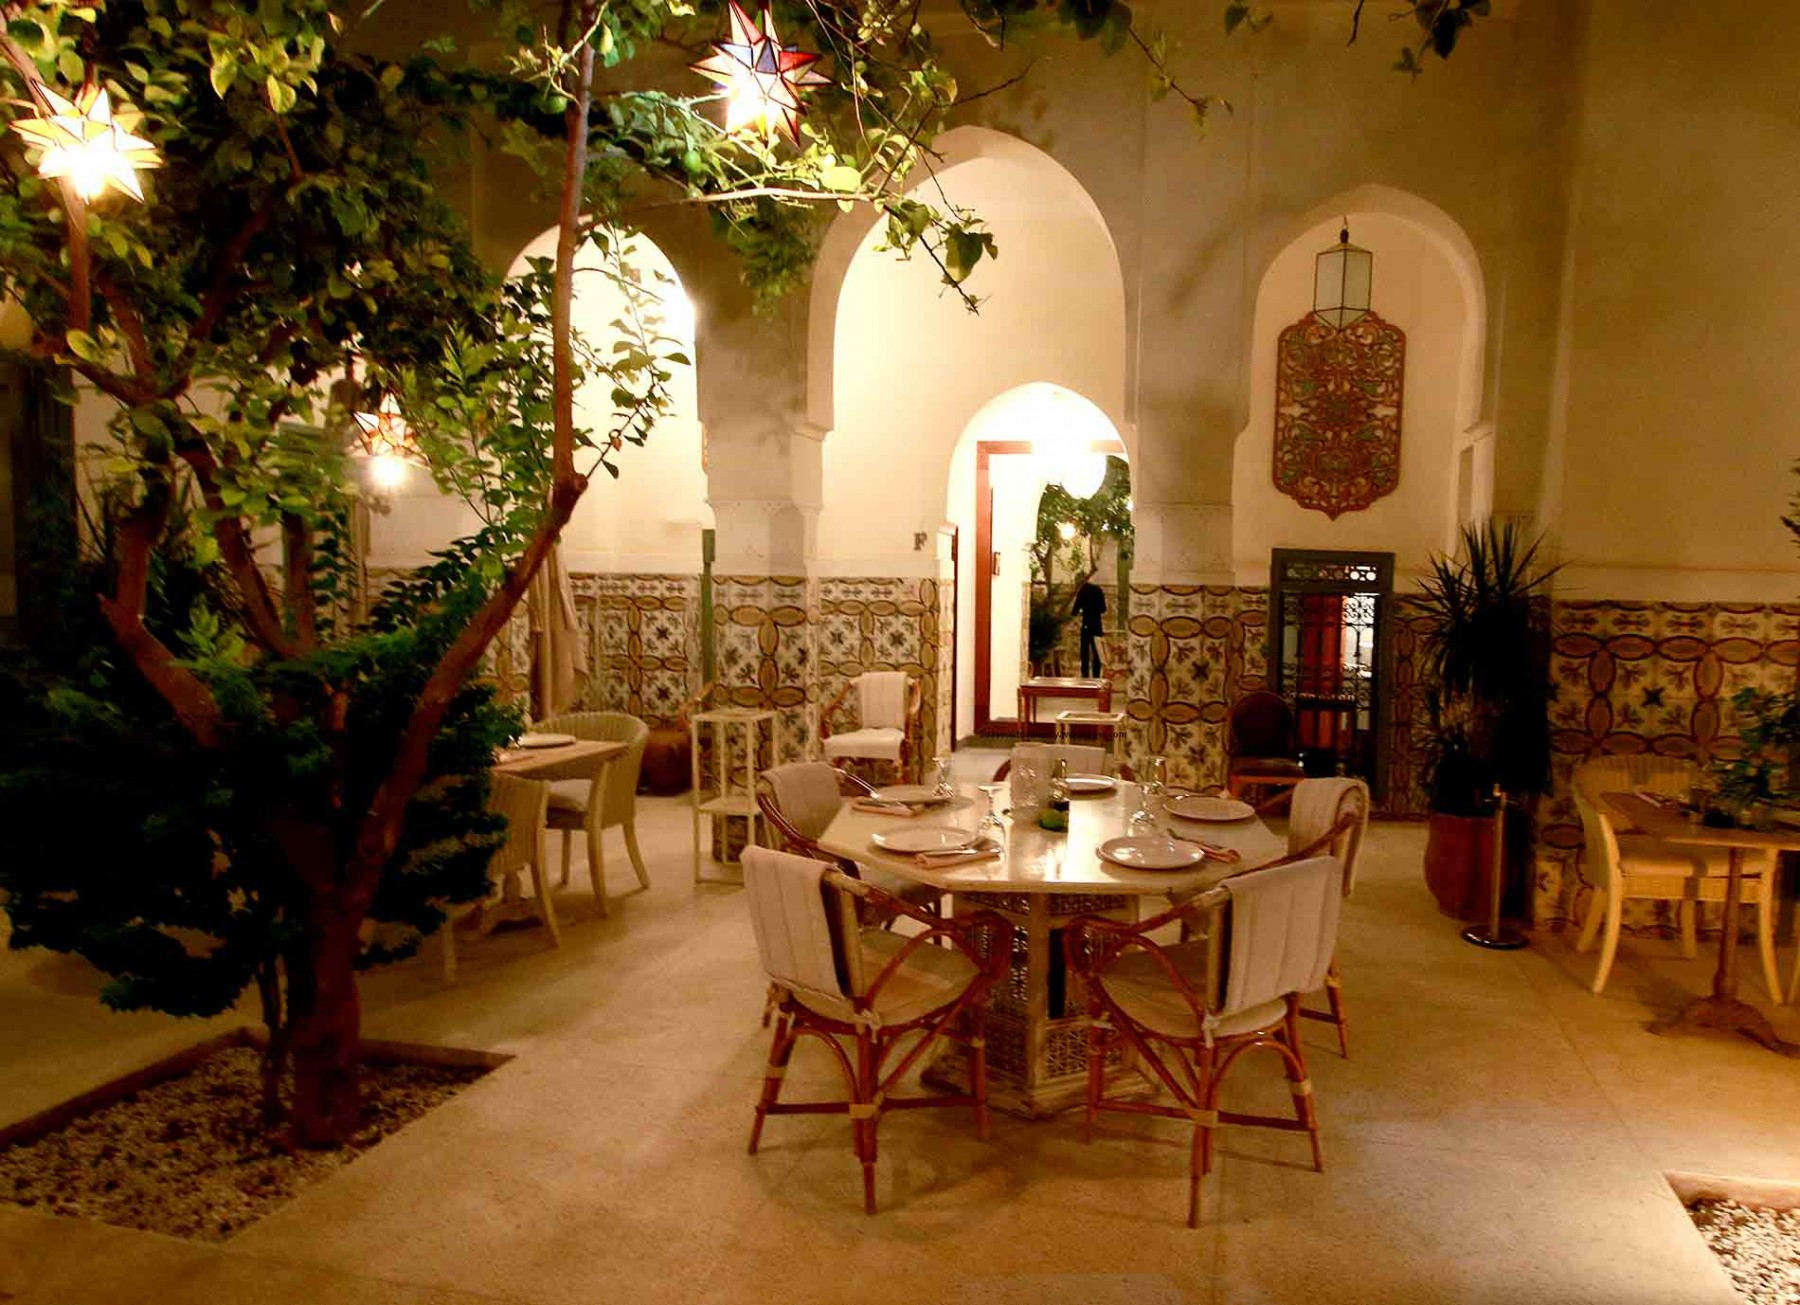 I Limoni restaurant in Marrakech. Italian and Moroccan food